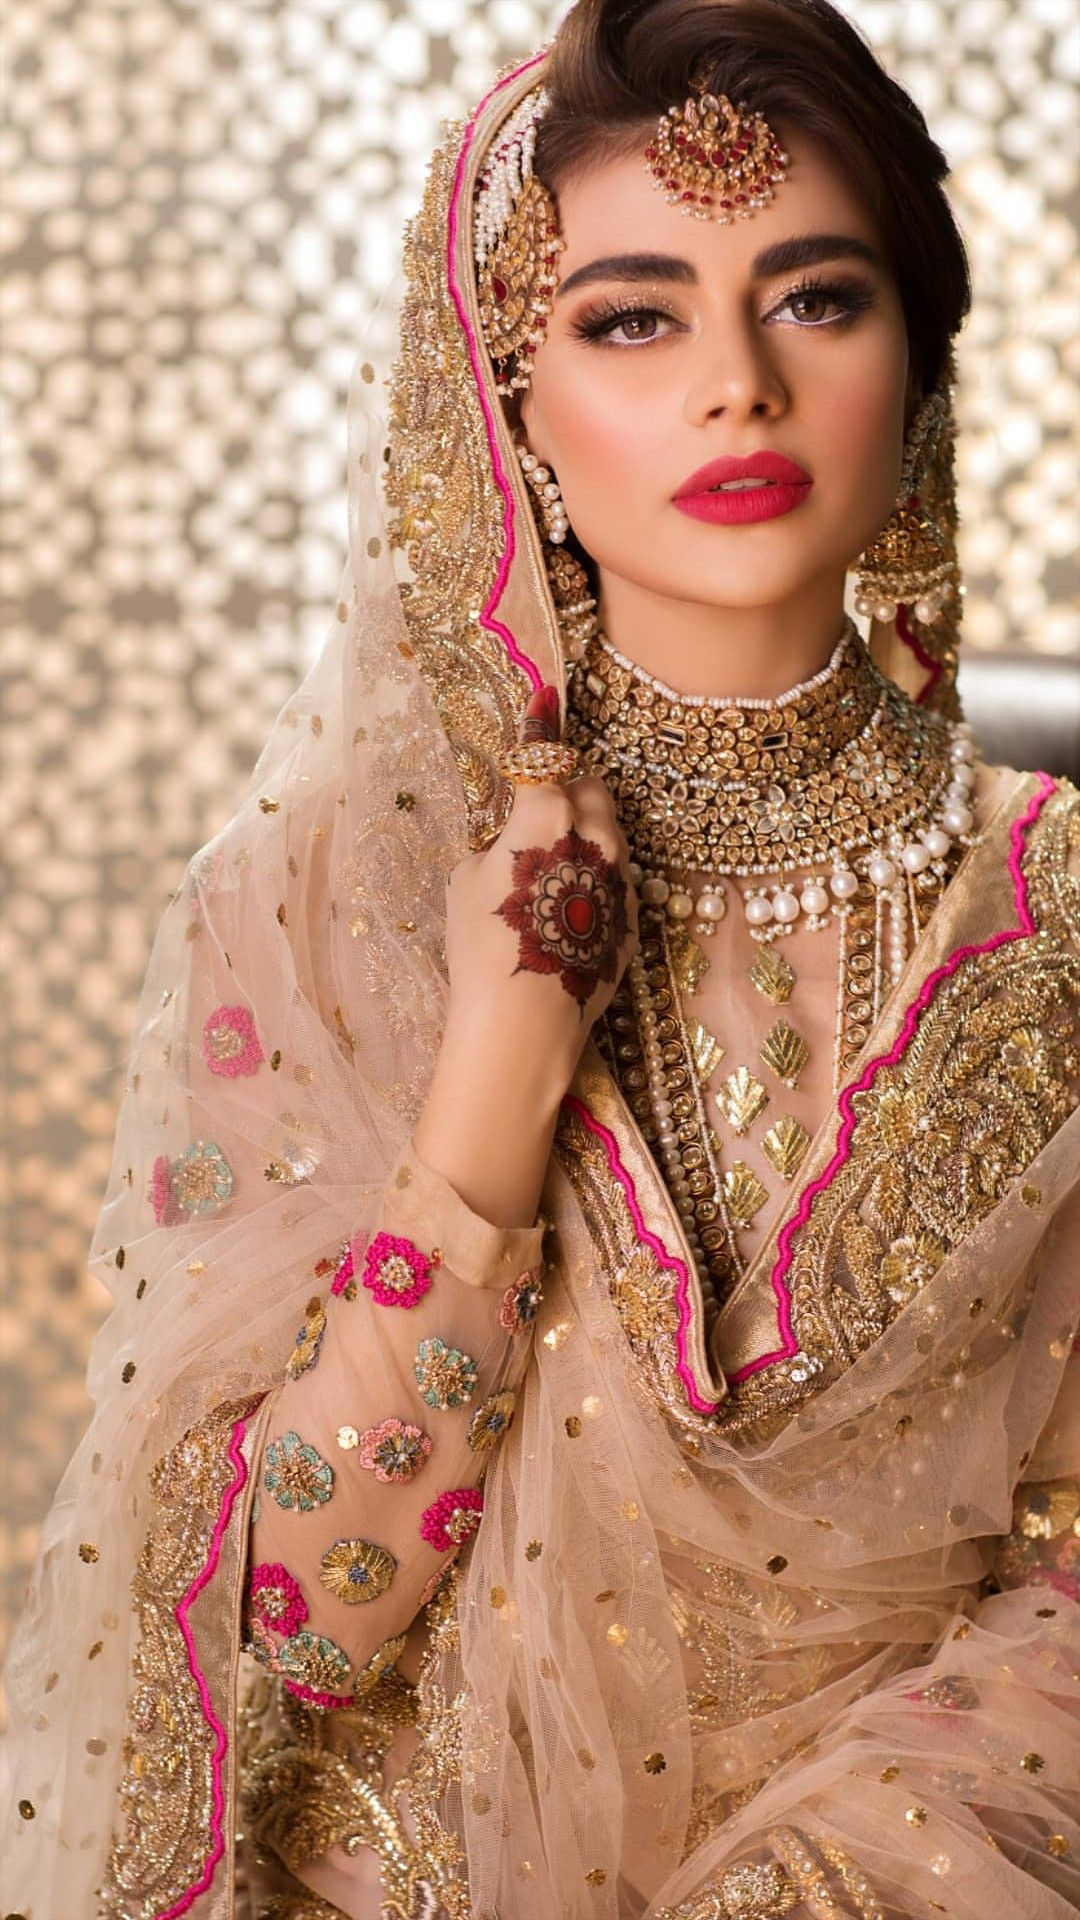 Pin by anam jumlana on makeup tricks Indian wedding